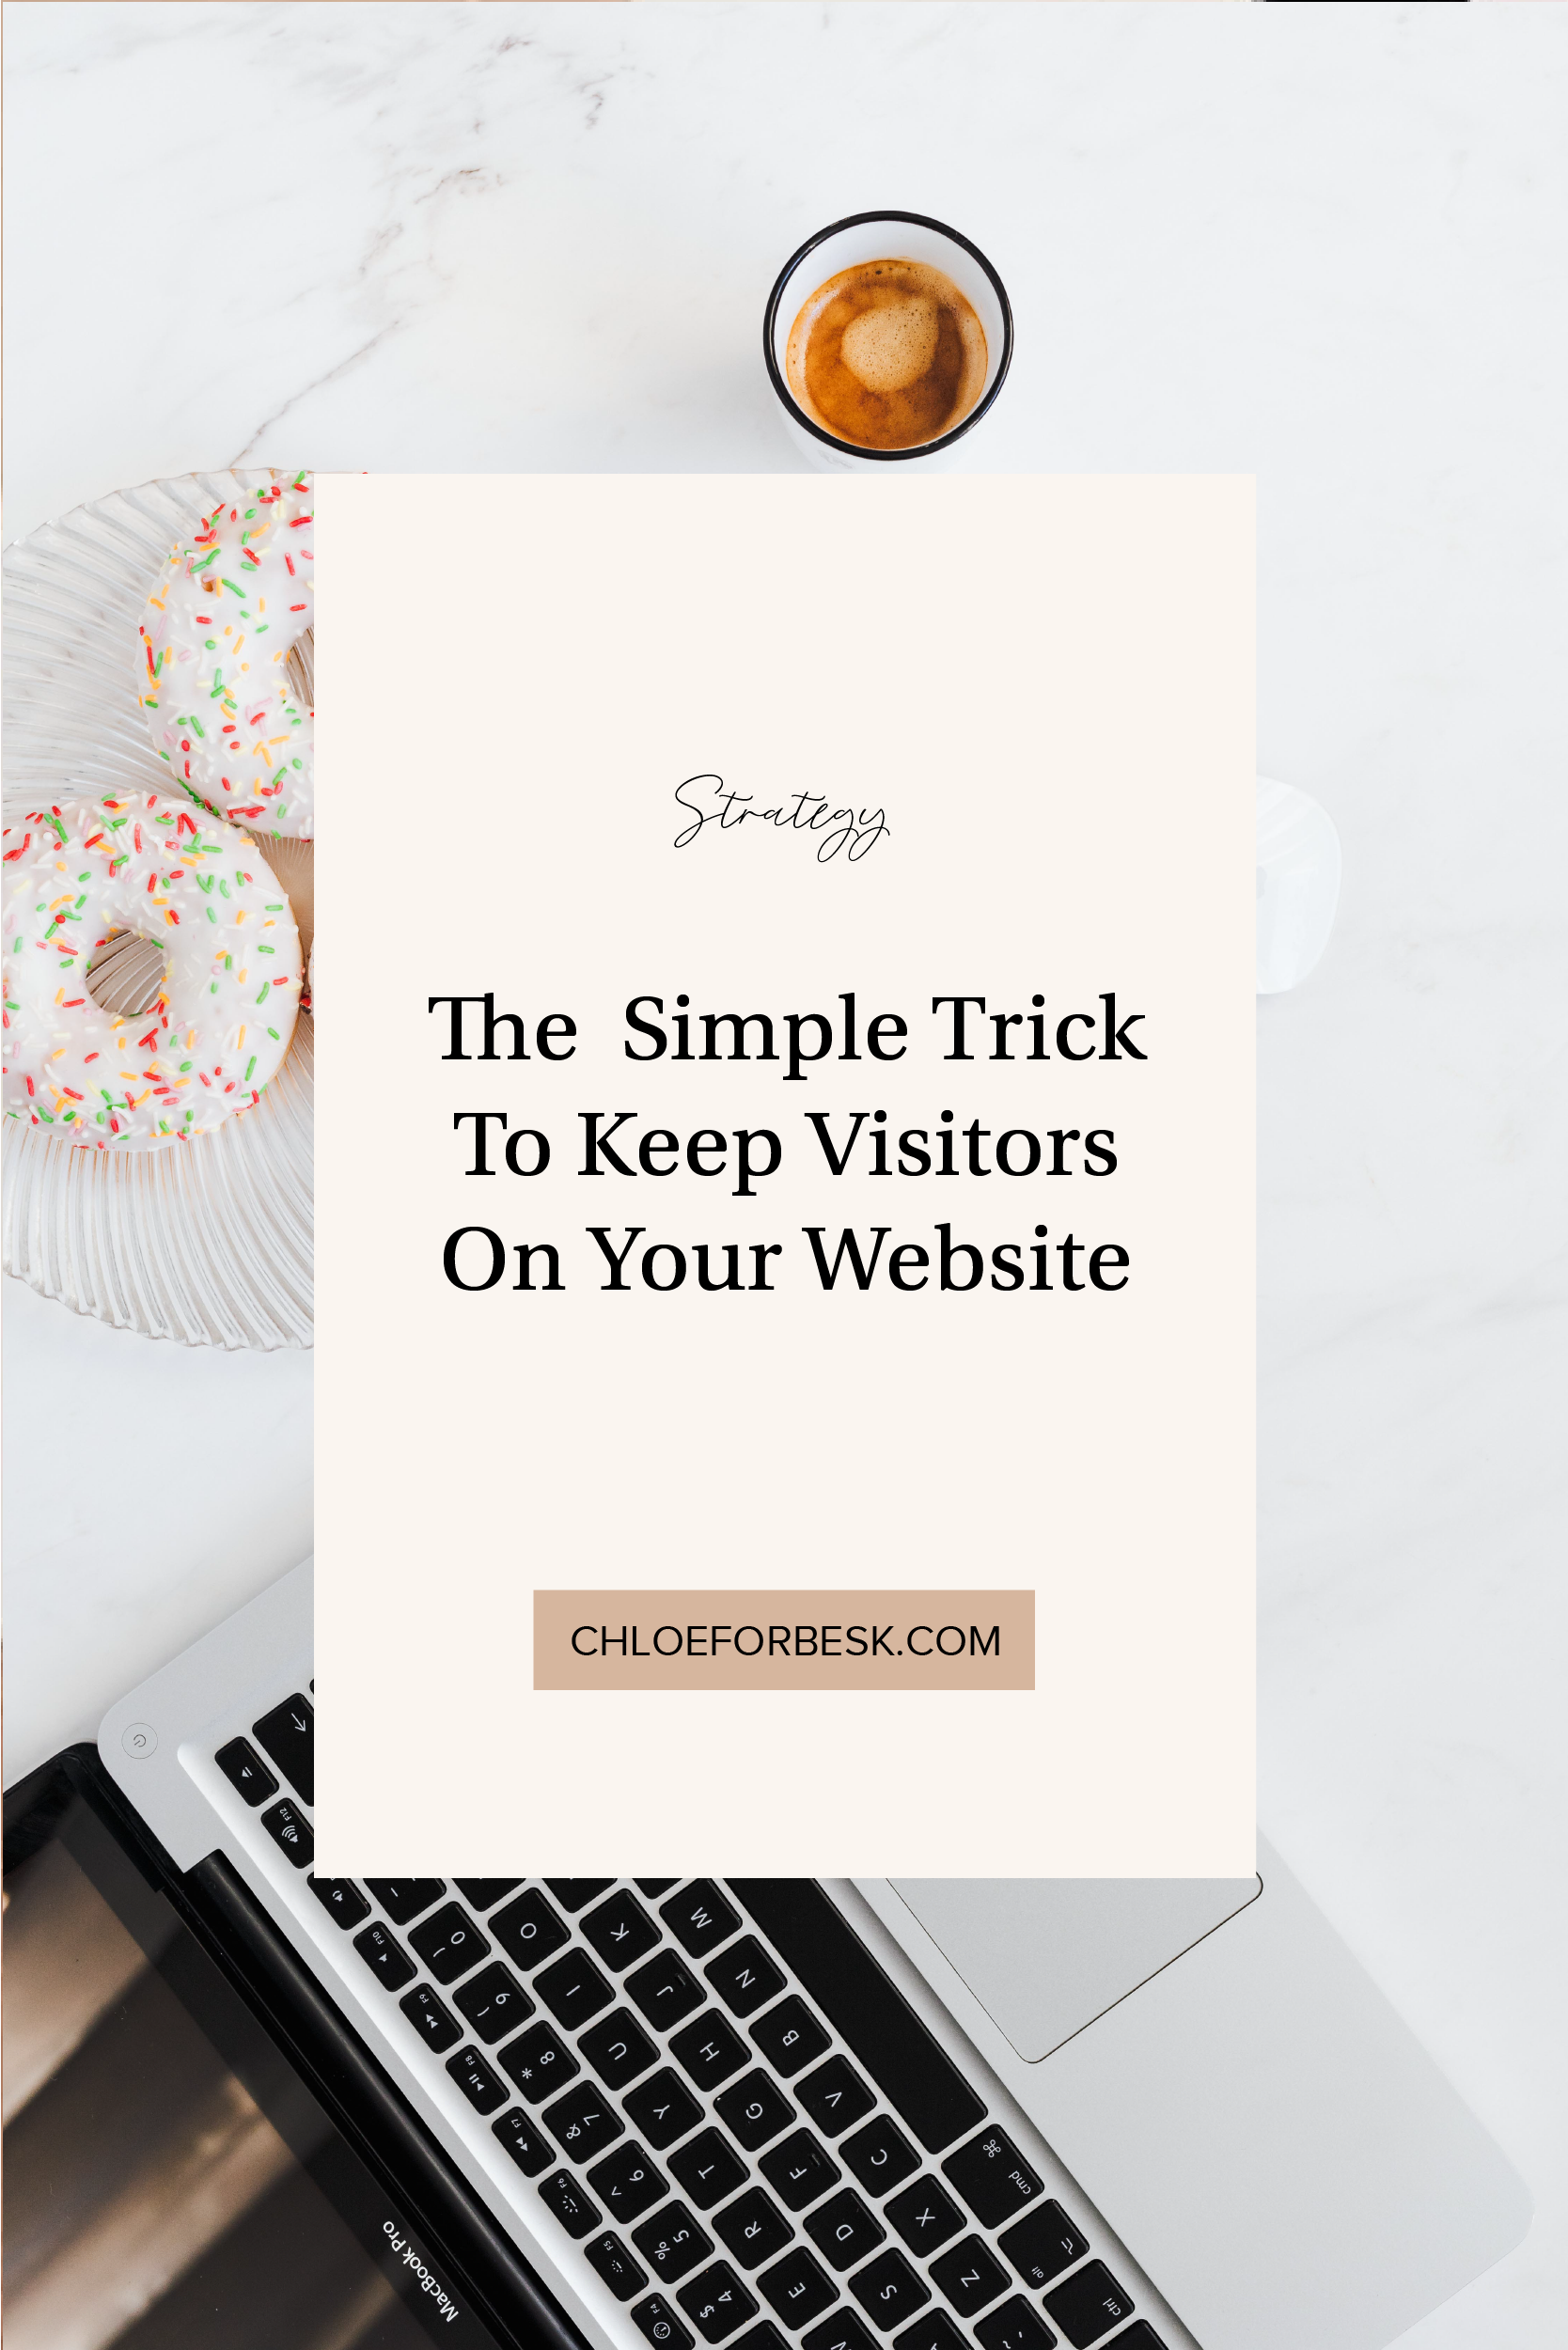 The Simple Trick To Keep Visitors On Your Website-03.png